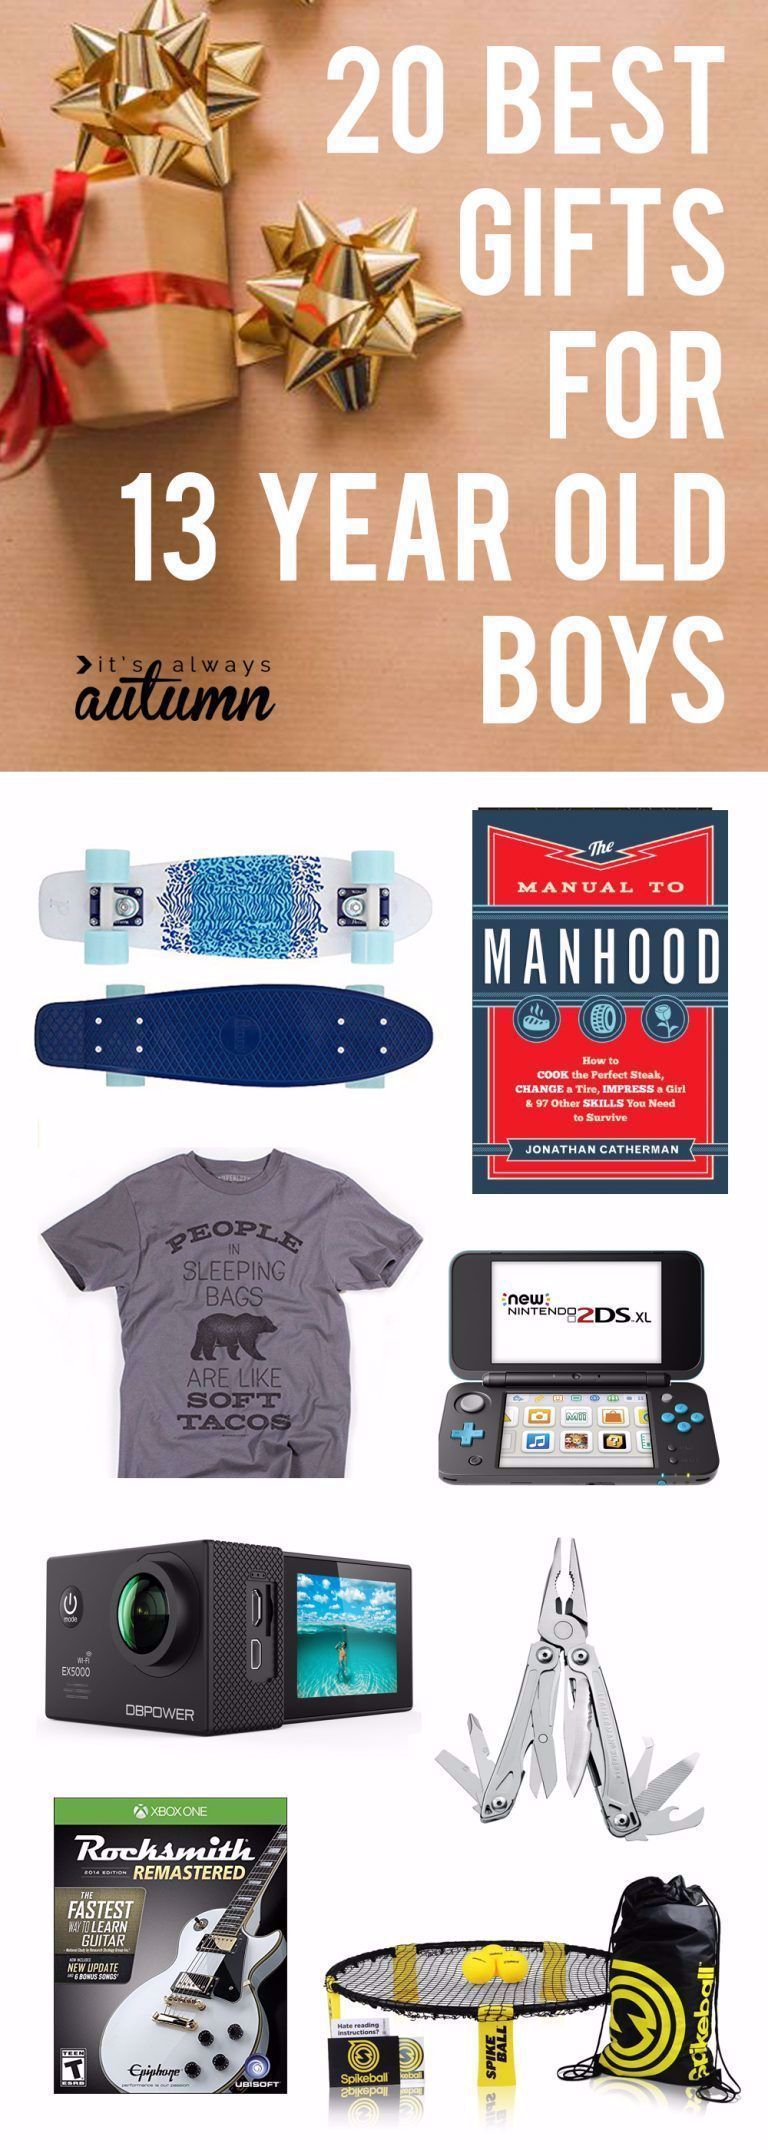 Best gifts for 13 year old boys! Great Christmas gift